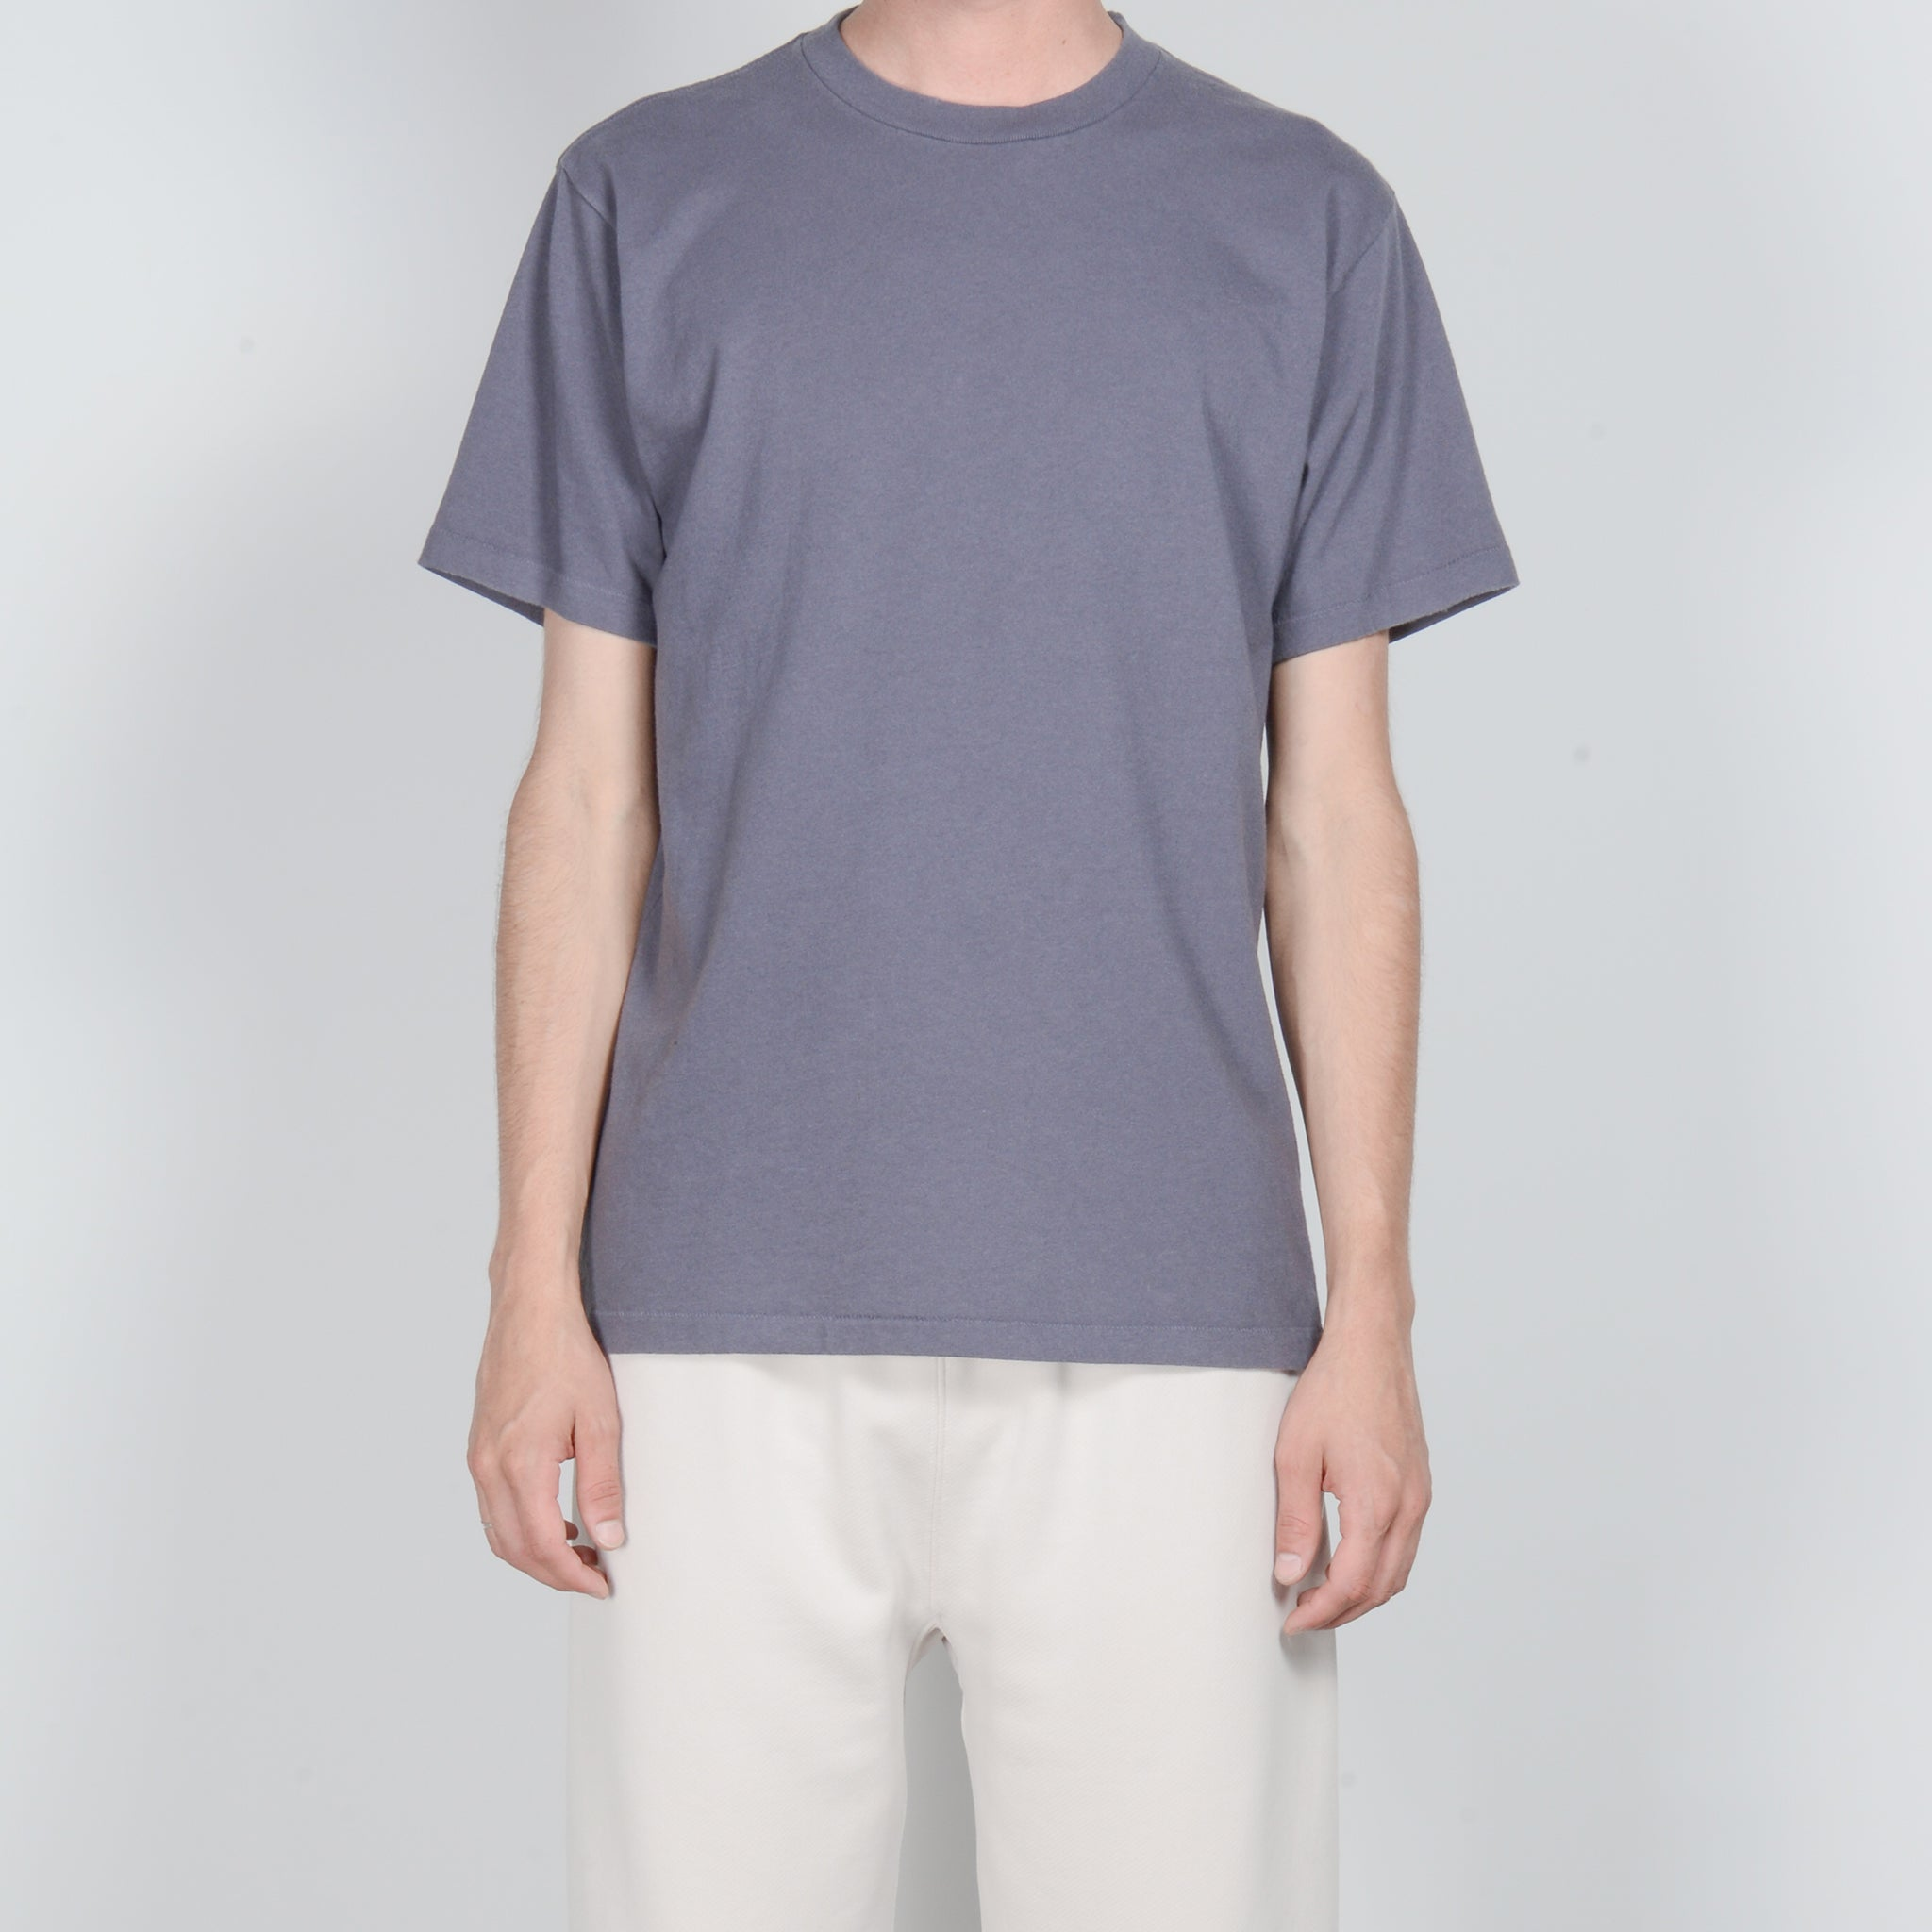 Lady White Co. Lite Basic T-Shirt in Night Grey